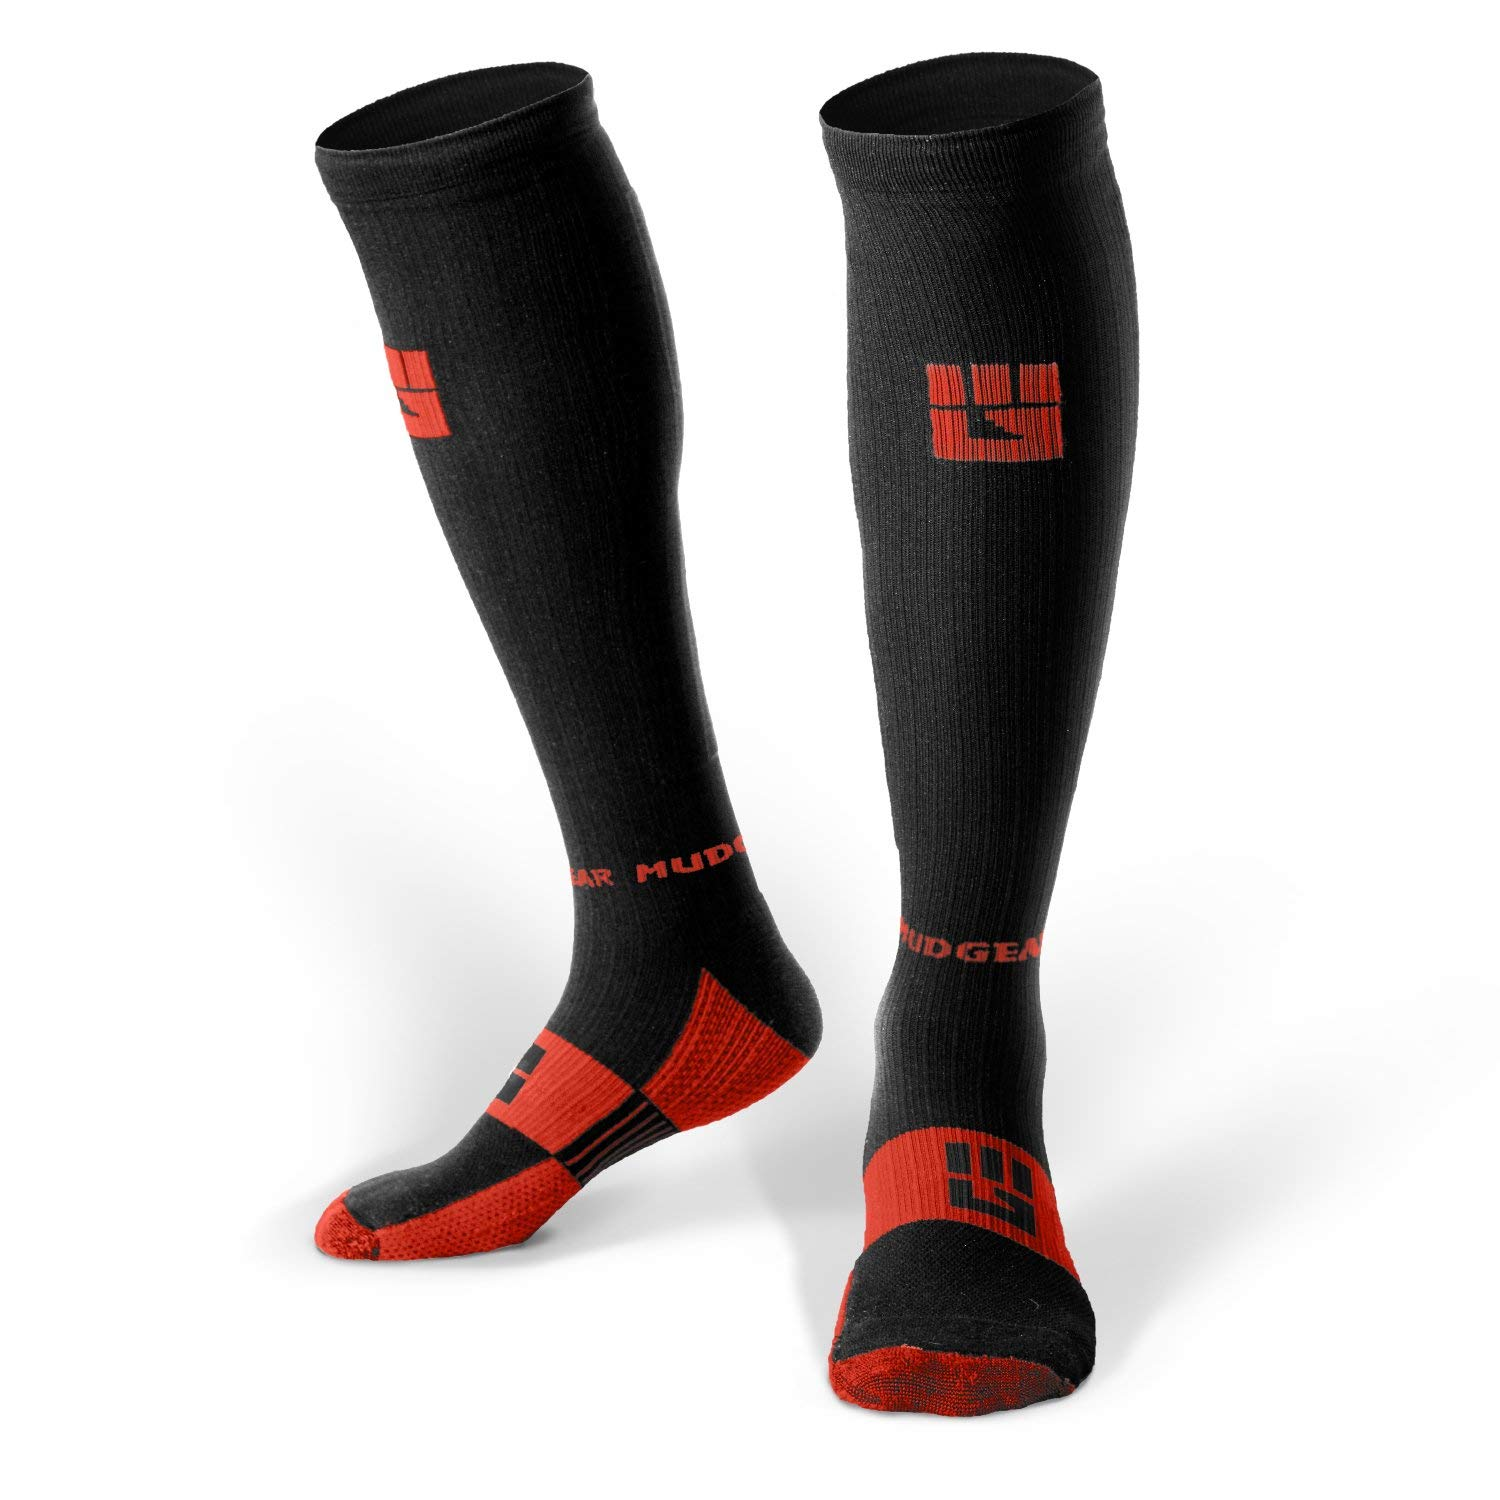 MudGear Premium Compression Socks - Mens & Womens running hiking trail (1 Pair) by MudGear (Image #1)